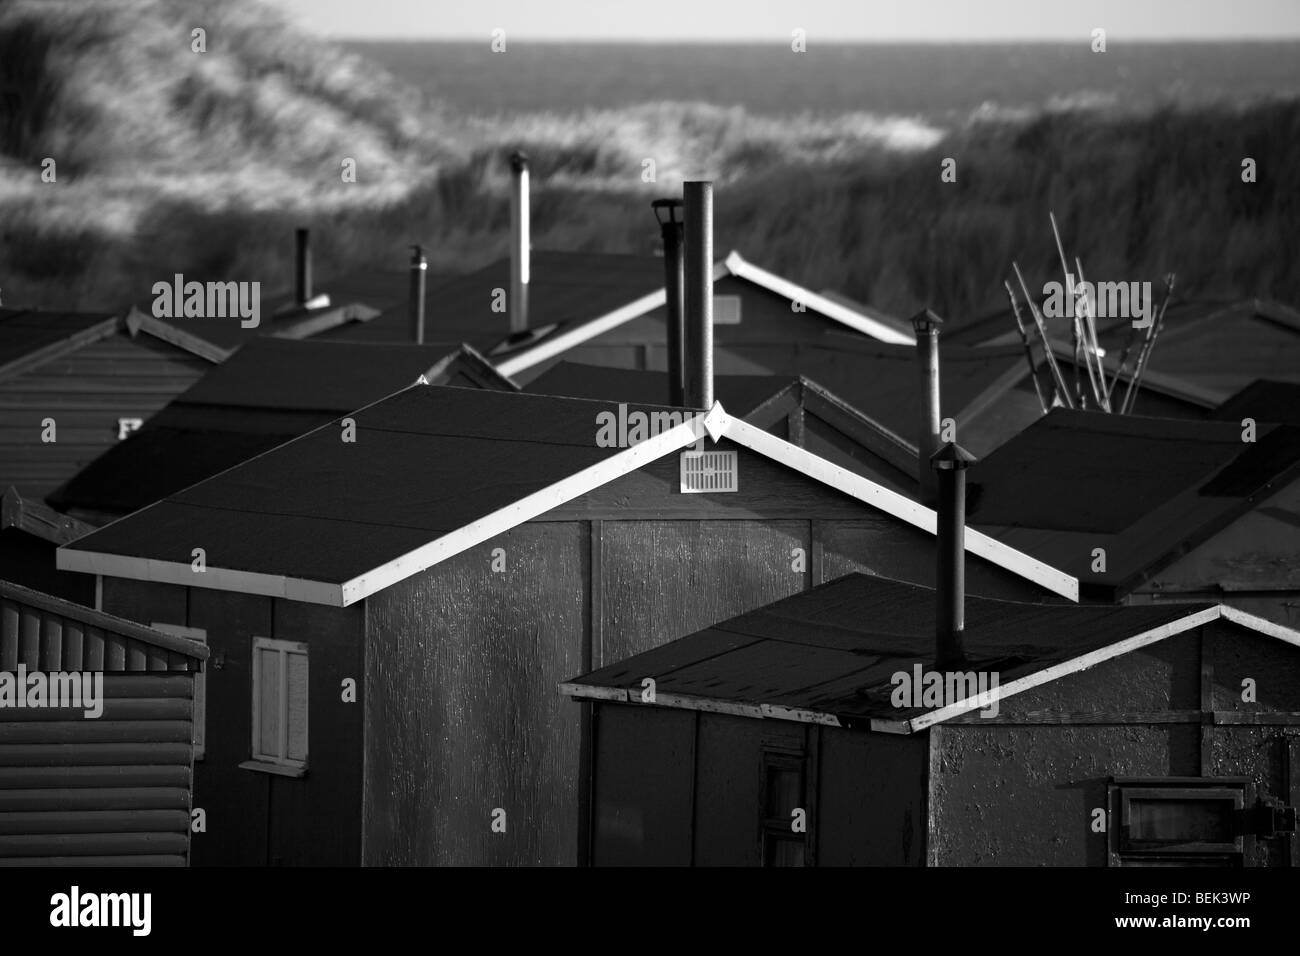 Fisherman's huts at Redcar near Middlesbrough, Teesside, North Yorkshire uk - Stock Image